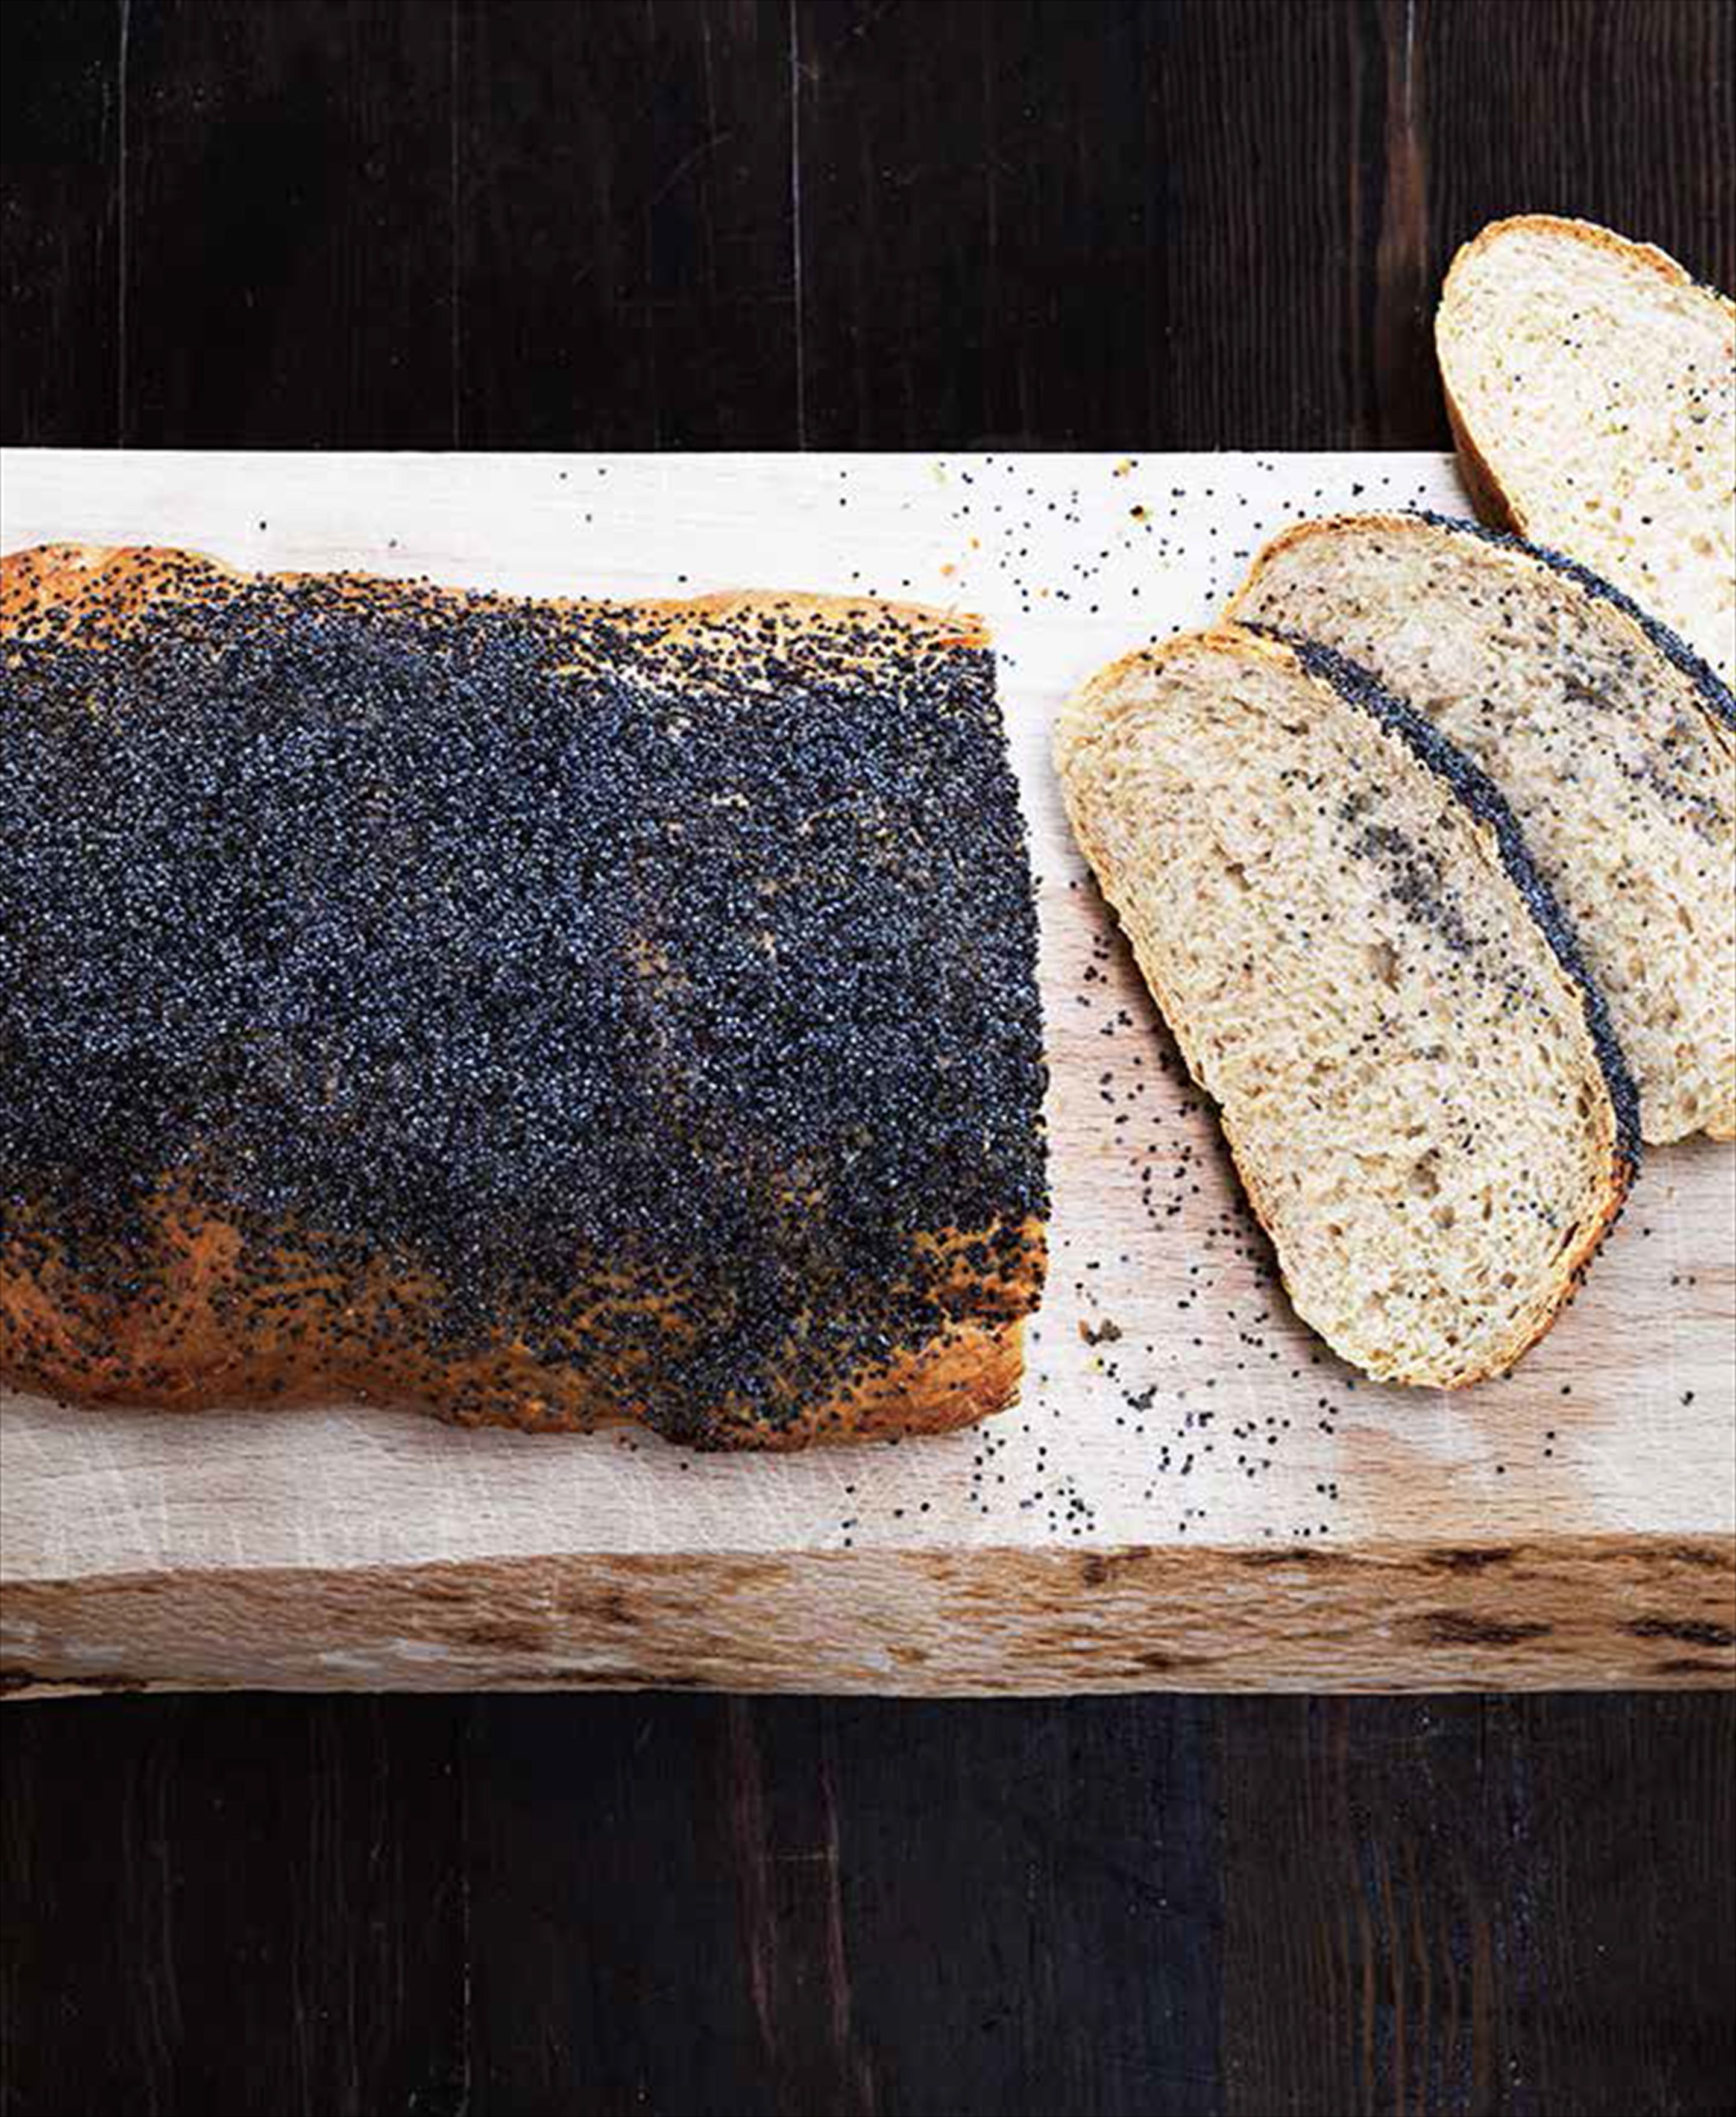 Mormor's white bread with poppy seeds